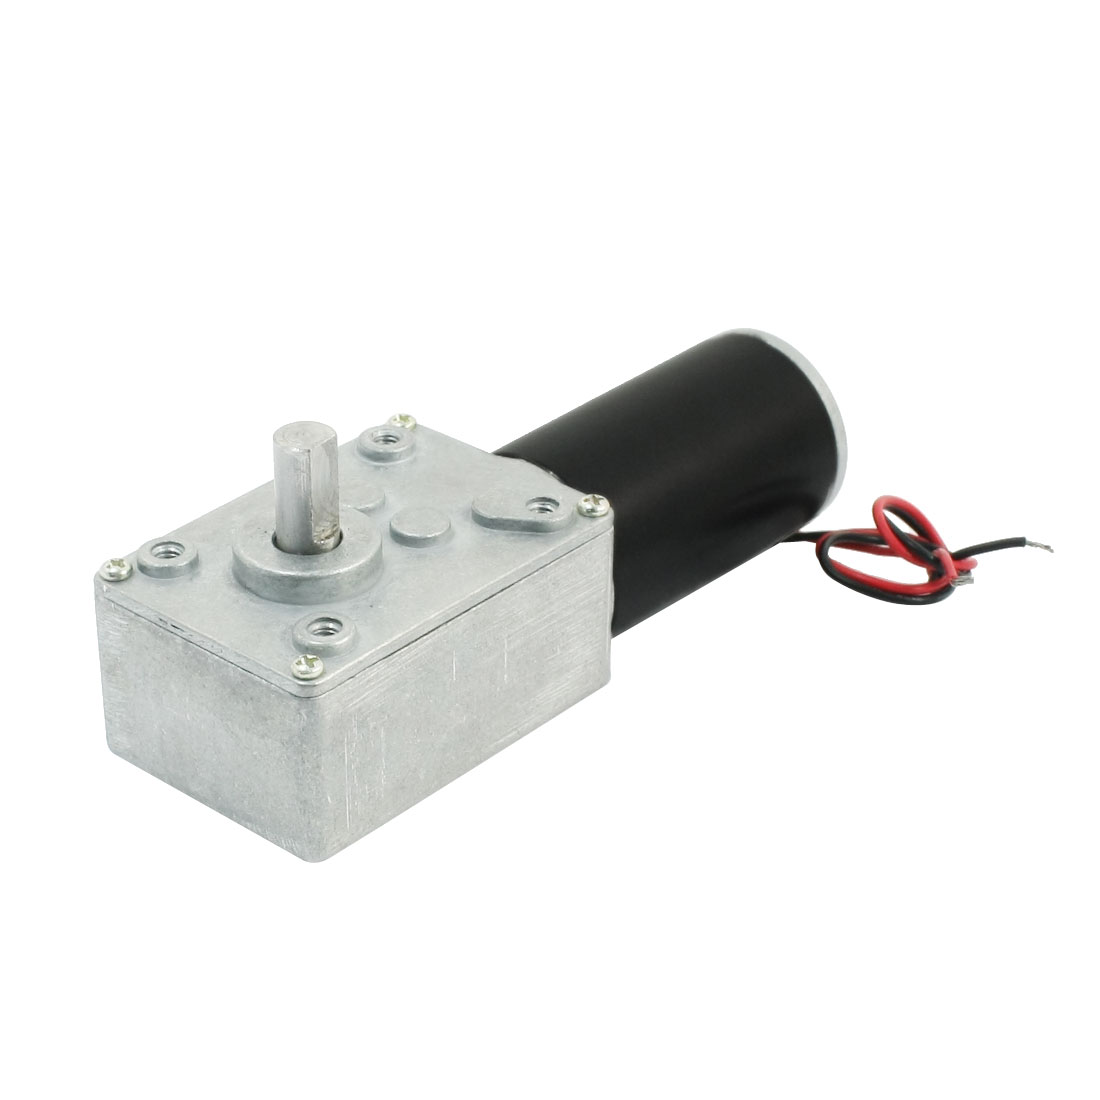 19cm Long Dual Wire Leads 7mm Shaft Reduction Ratio 8000RPM/80RPM Speed Reduce Worm Geared Box Motor DC24V